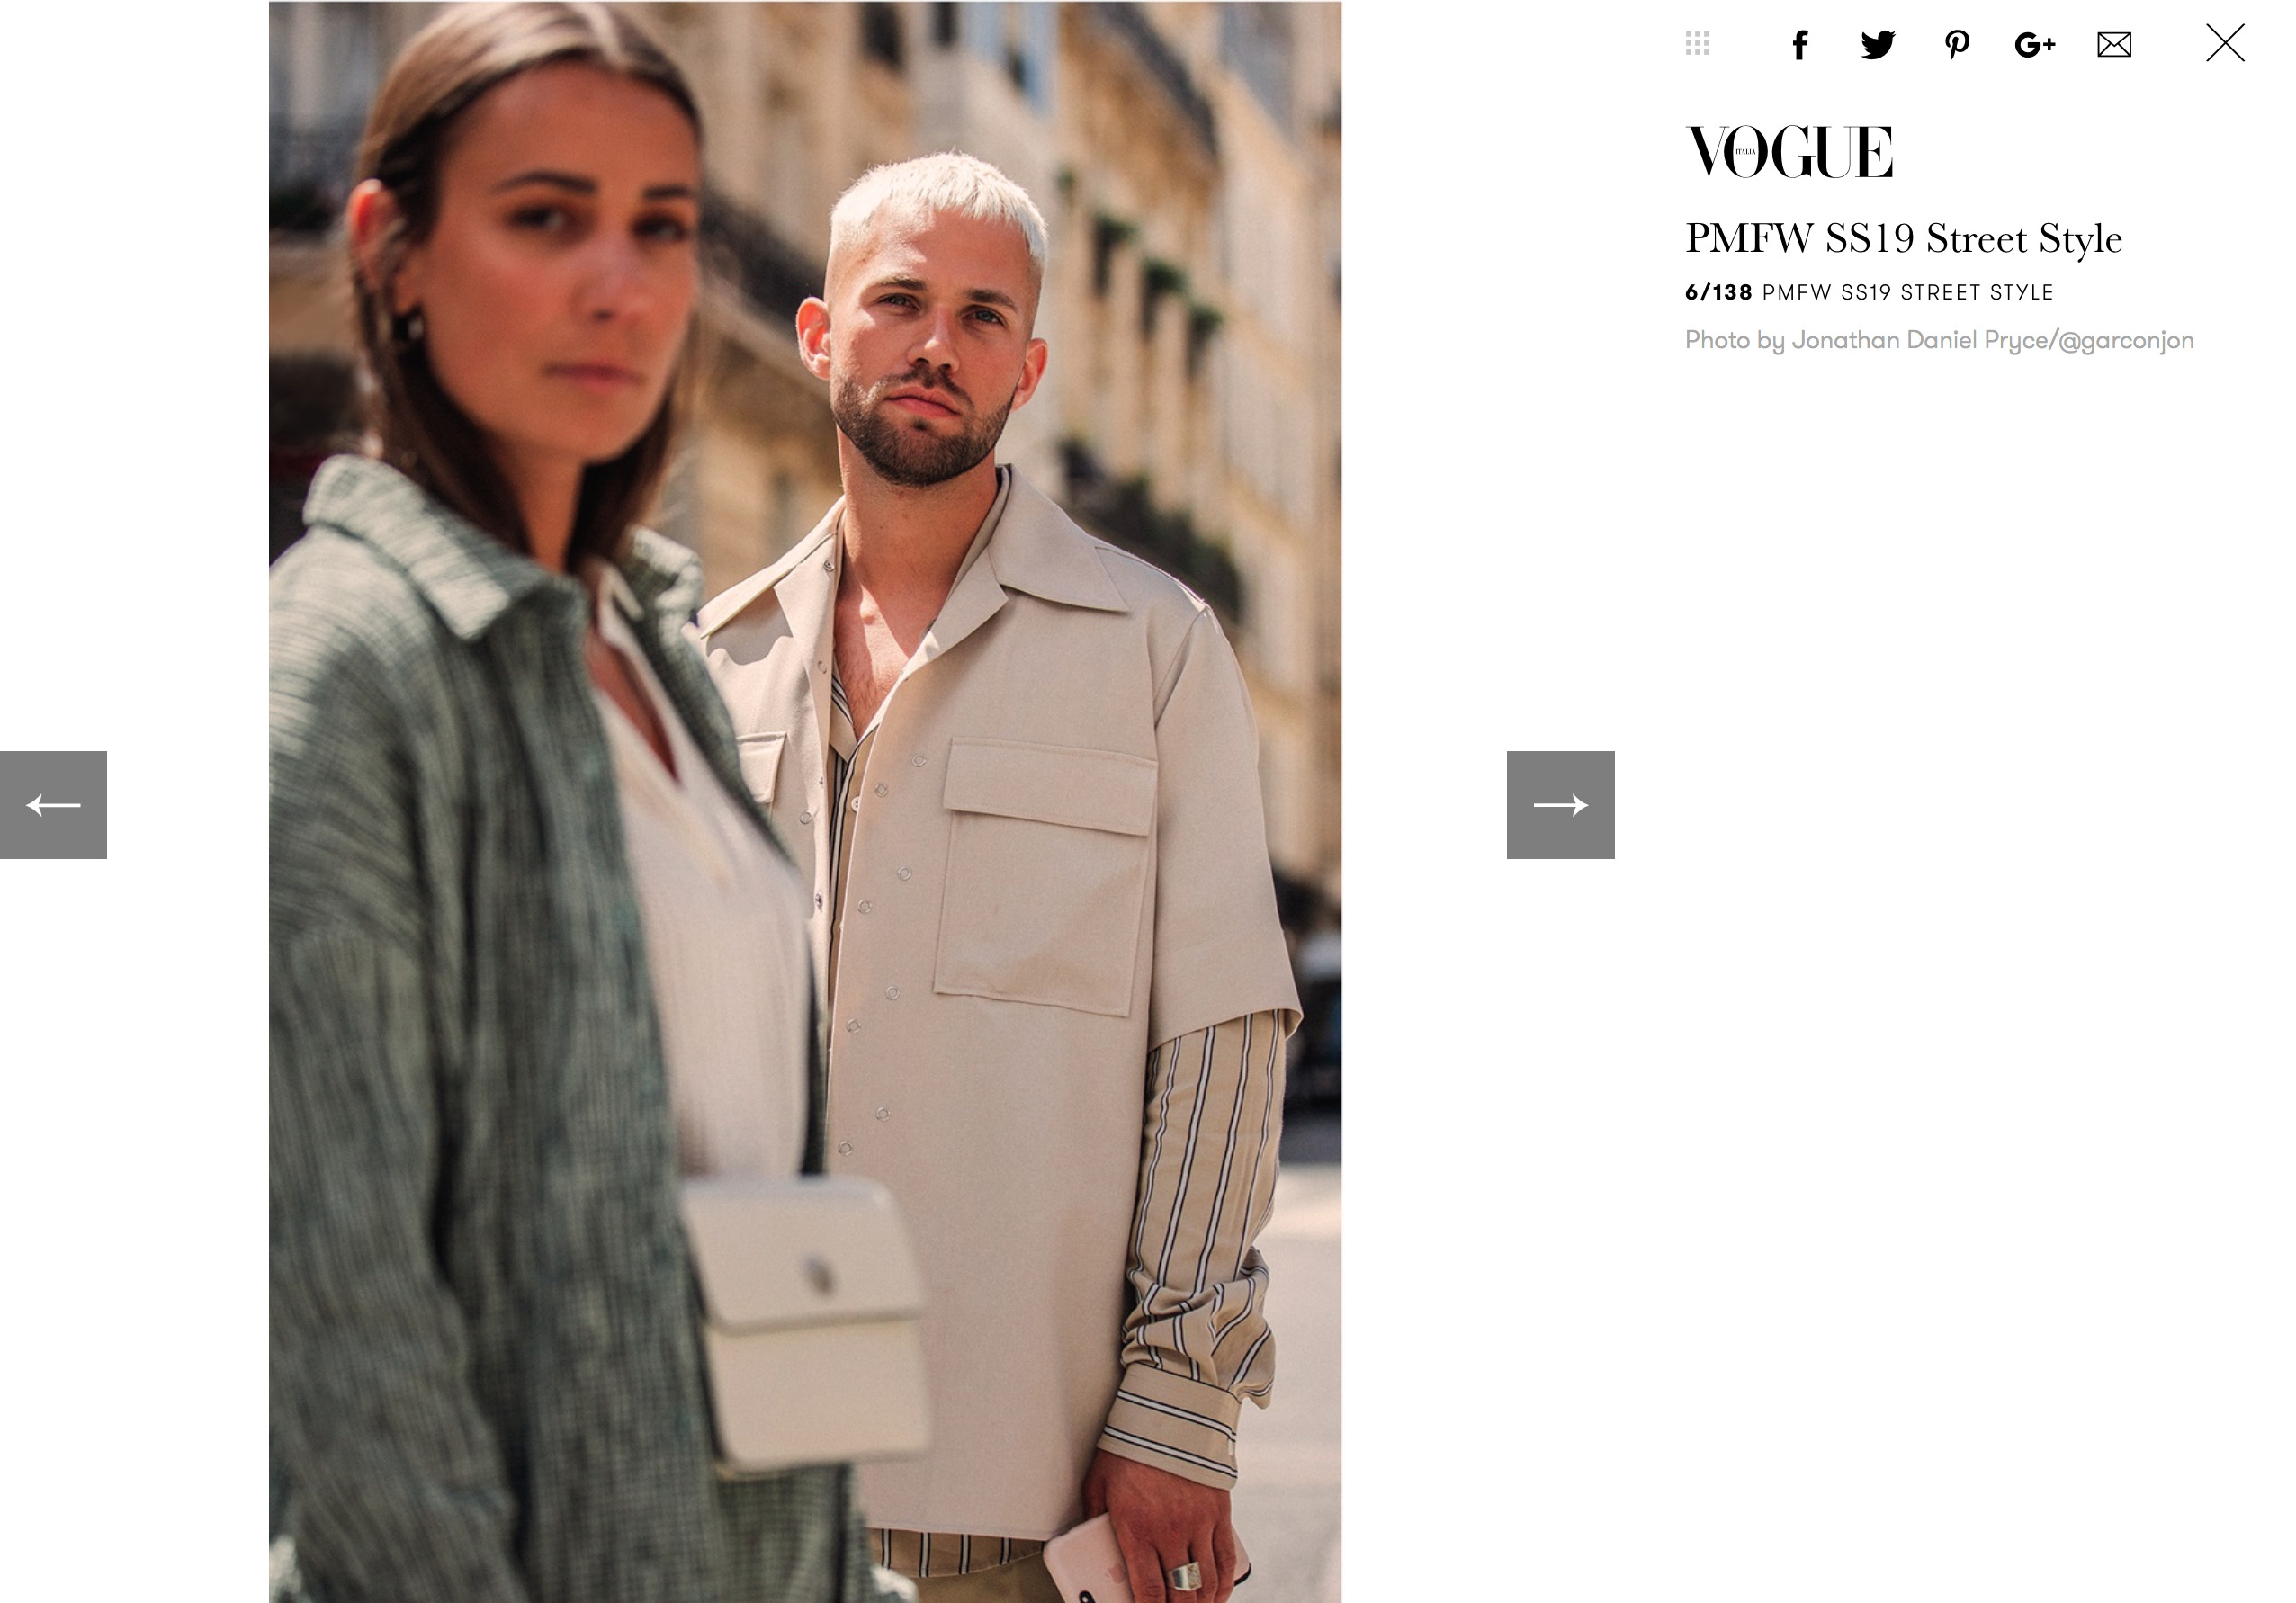 vogue italy stree style garconjon